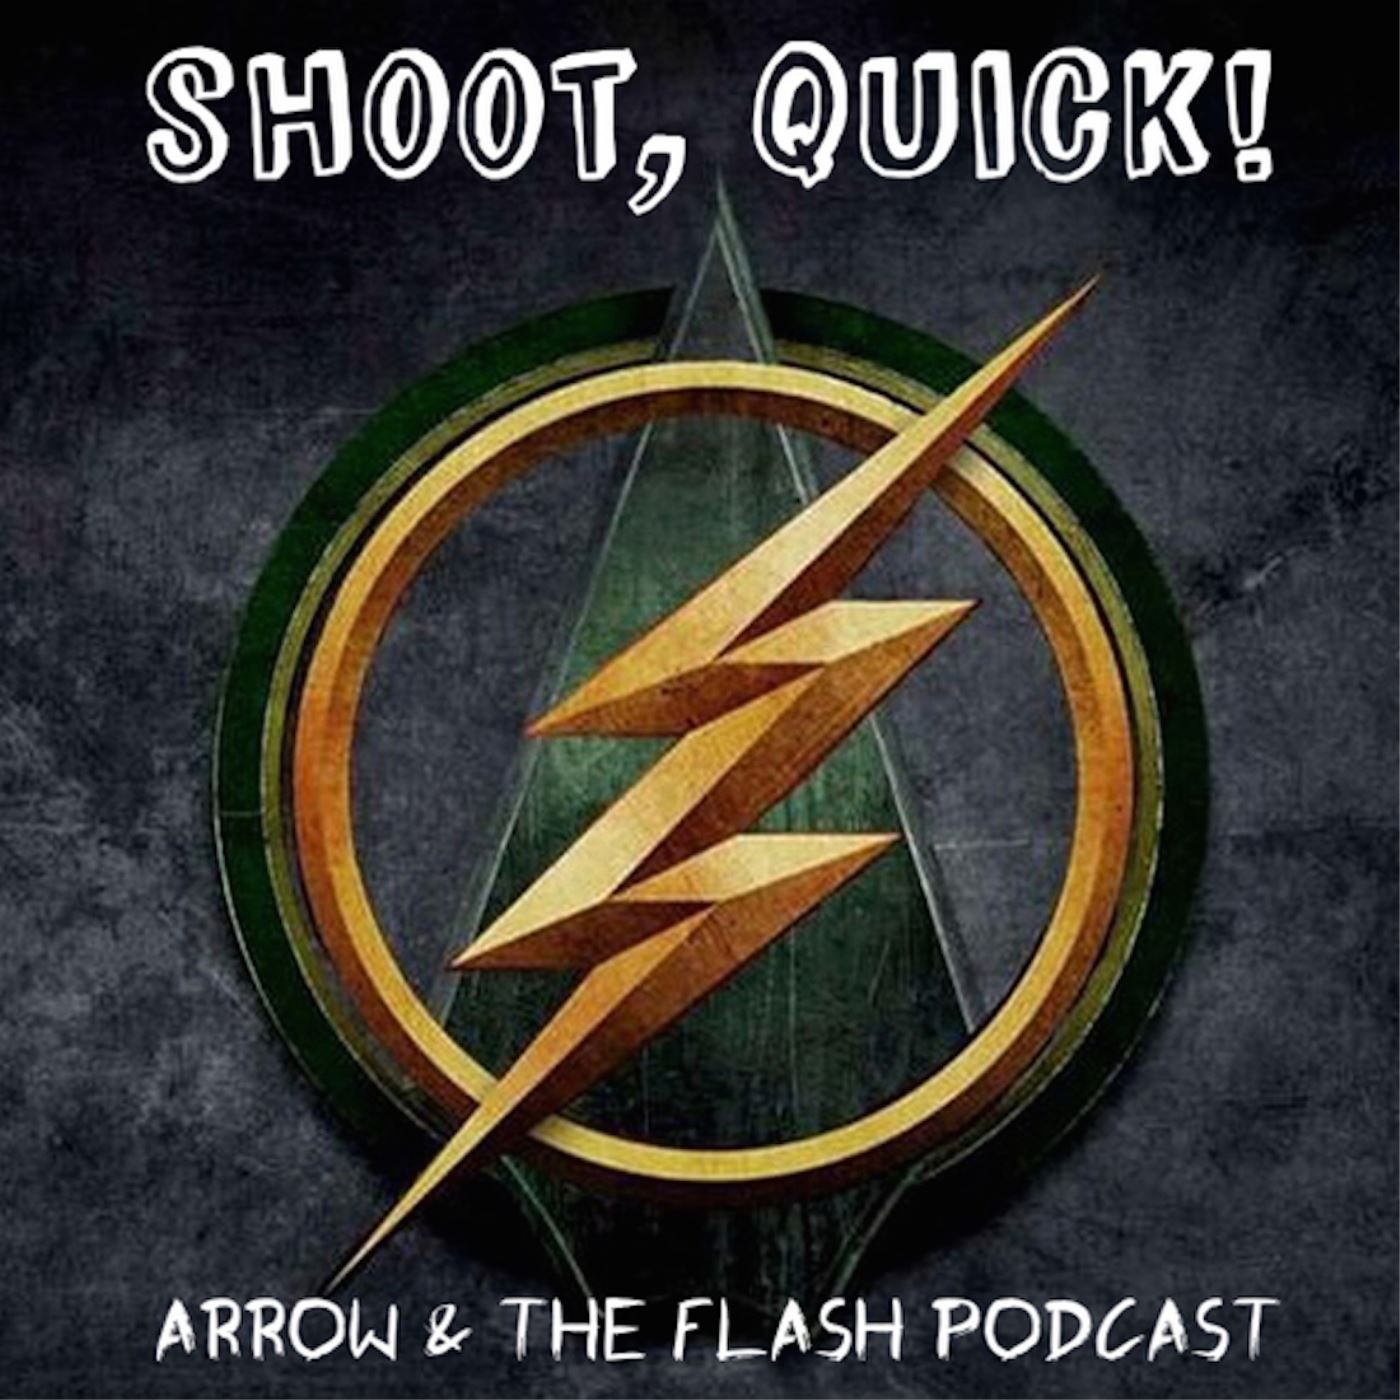 Shoot, Quick! S4 E9 Long Live the Supergirl Reign, We are the Flash, Legends of SciFi Tropes and Another Gangster Villain on Arrow aka The BerlanTVerse Part 2